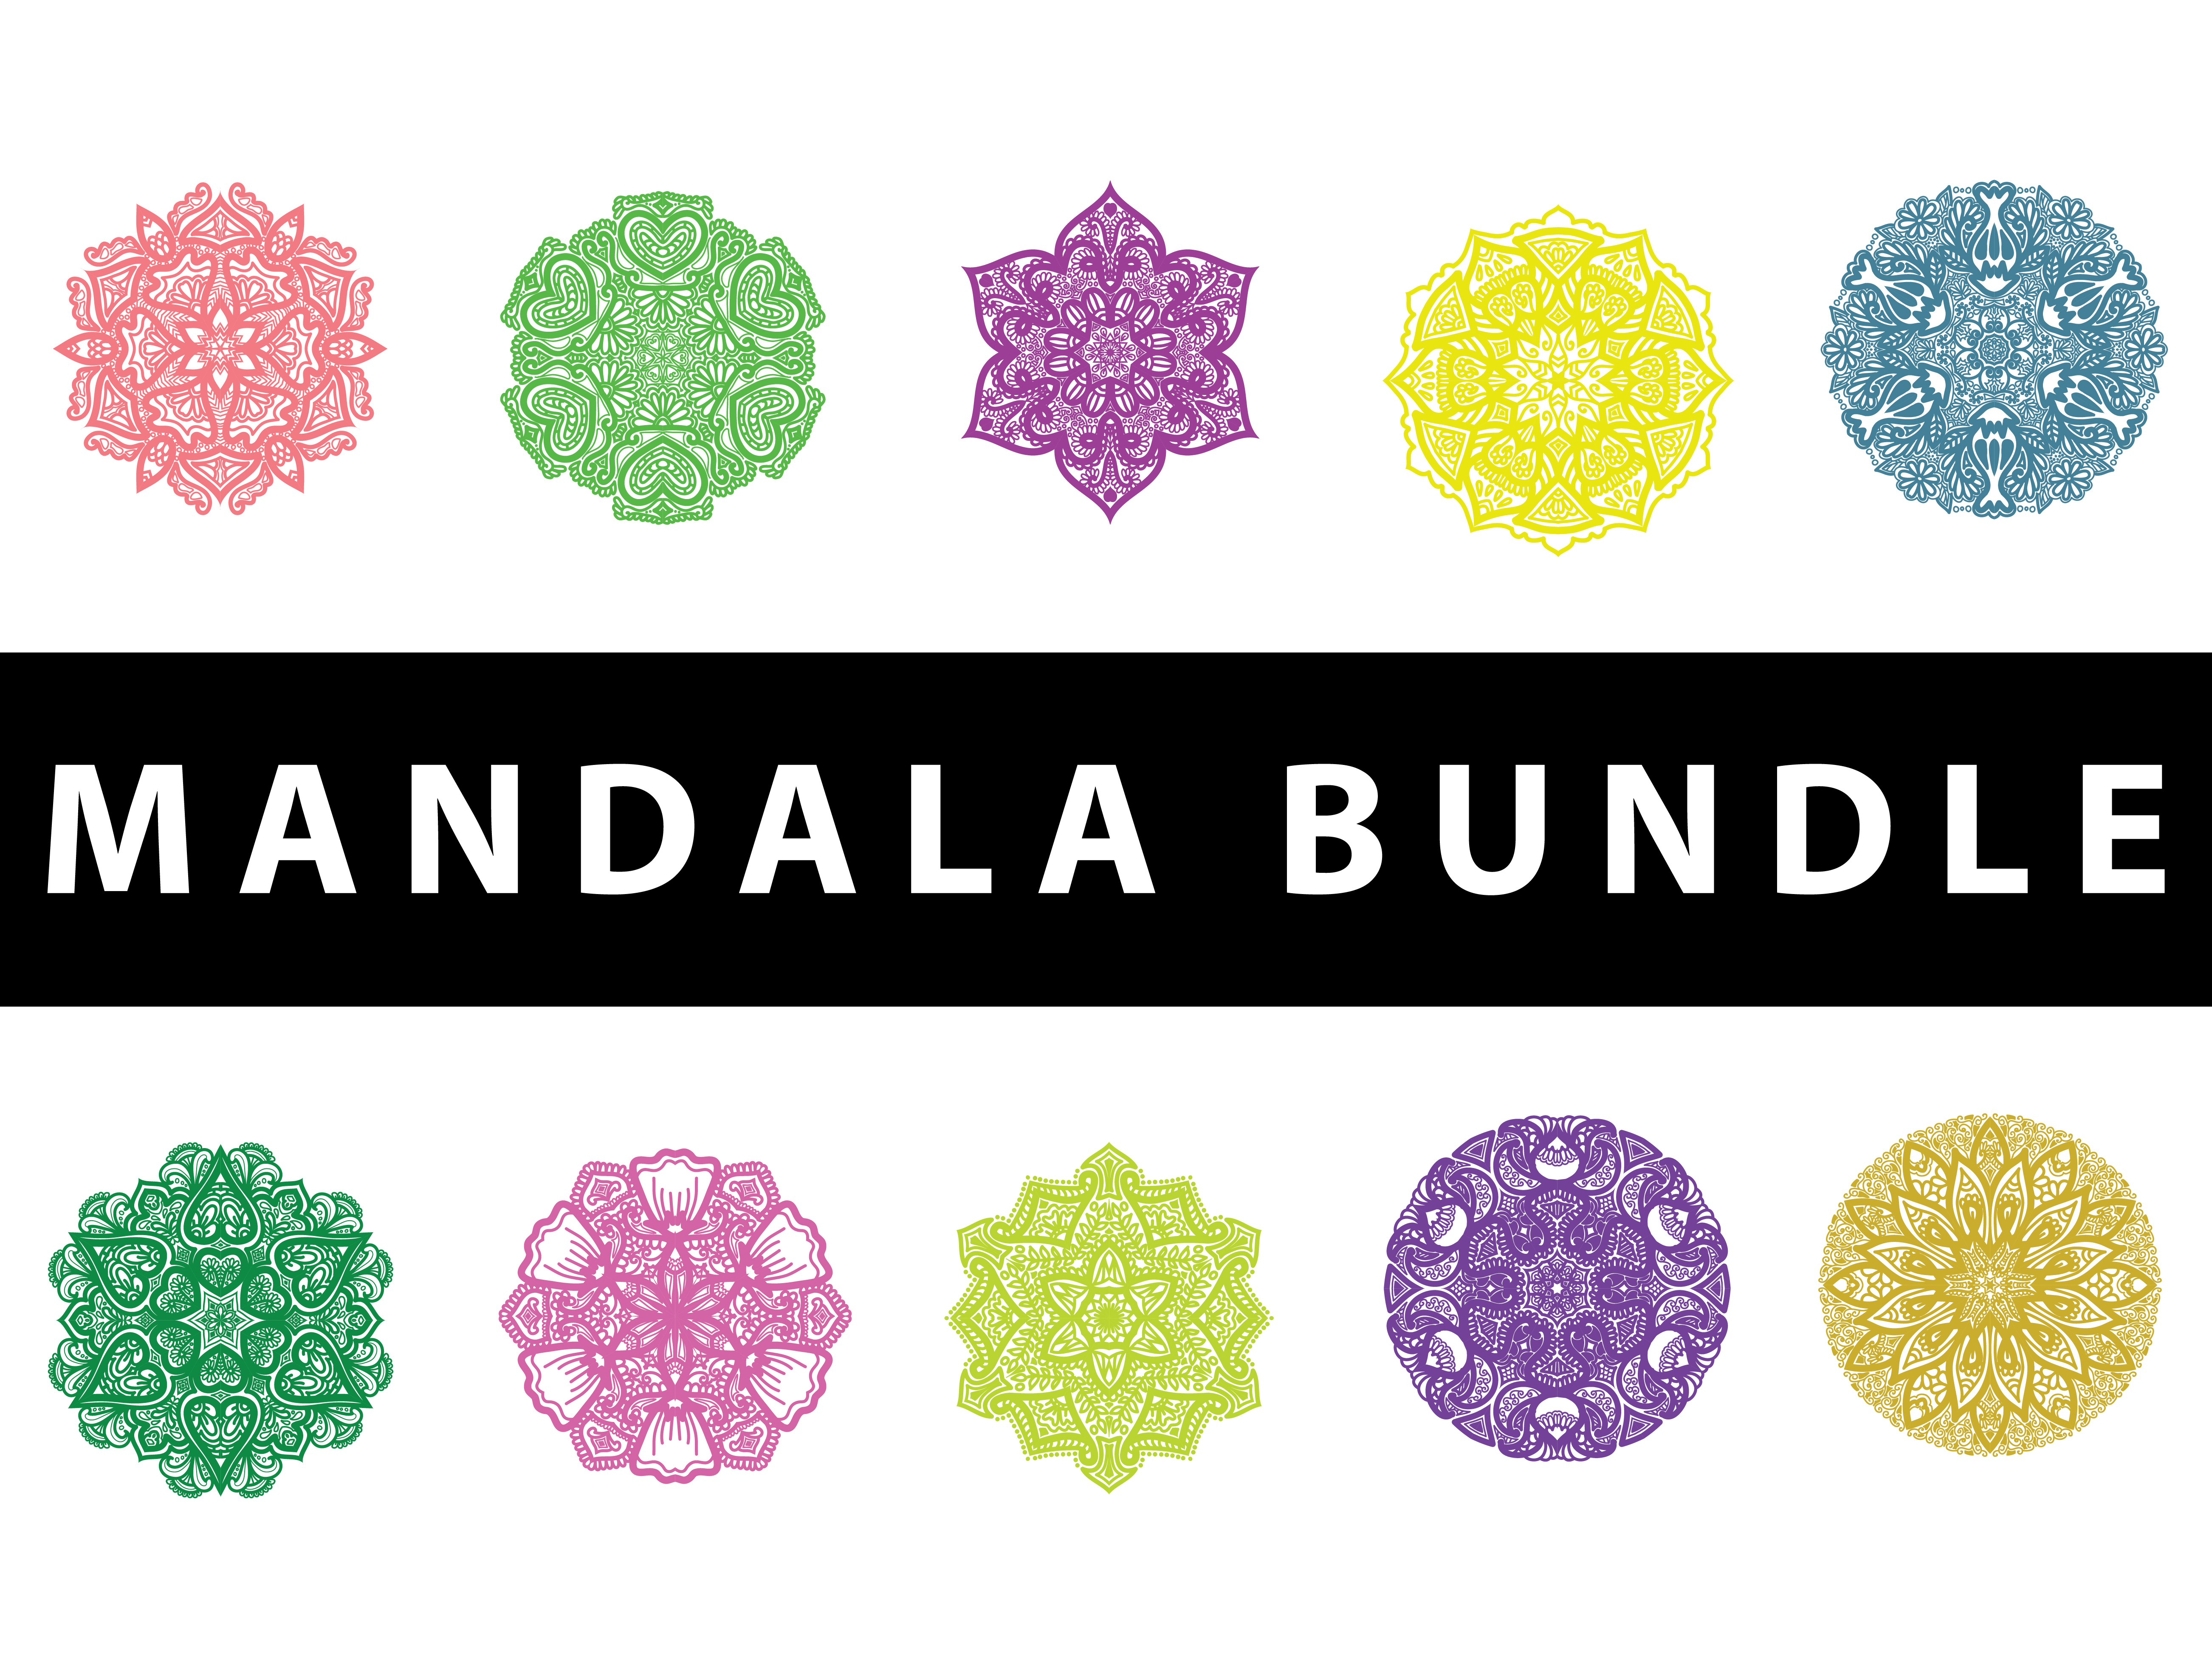 Download Free Mandala Pack Art Graphic By Redsugardesign Creative Fabrica for Cricut Explore, Silhouette and other cutting machines.